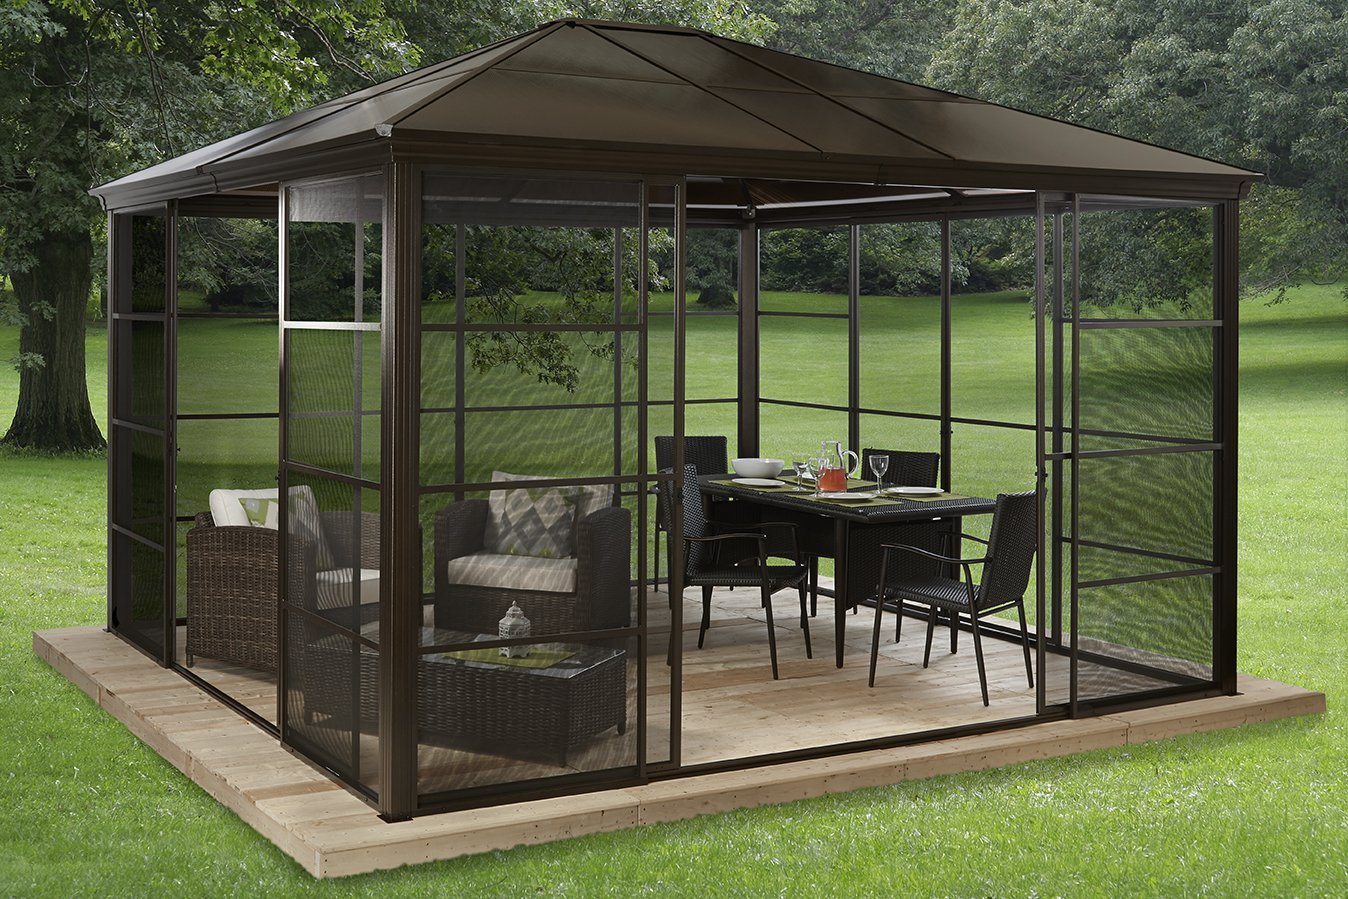 hardtop gazebos best 2018 choices sorted by size. Black Bedroom Furniture Sets. Home Design Ideas